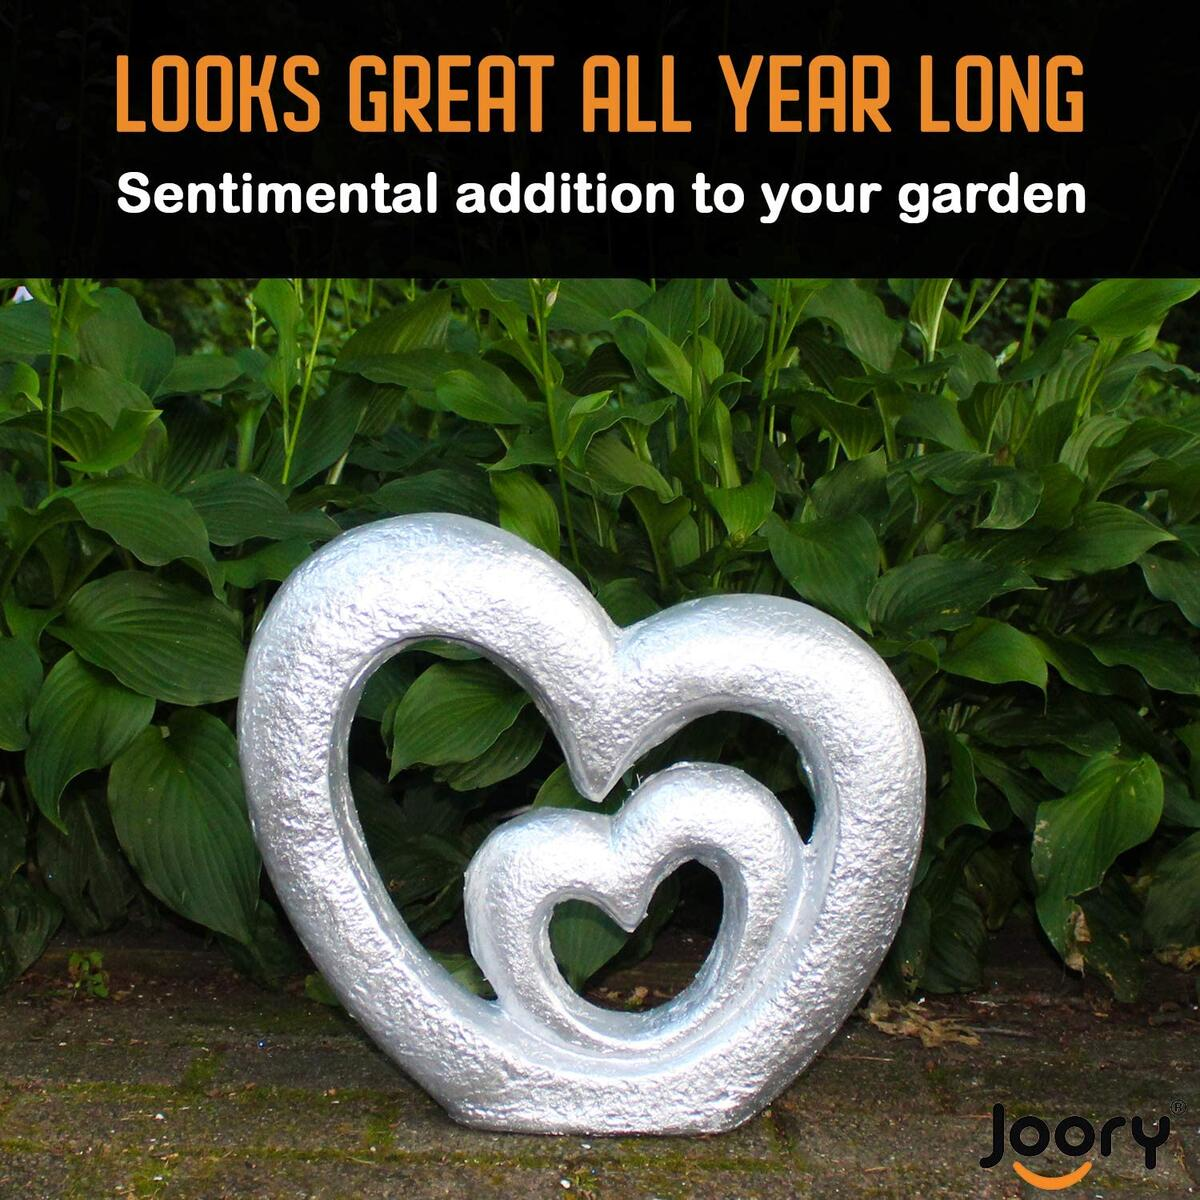 """JOORY Nesting Hearts Garden Sculpture – Cast Stone Garden Statue for Patio, Backyard and Outdoor Decor – Weather Resistant Lawn Ornament and Wedding Decoration (13.4"""" x 12.2"""" x 3.15"""")(Silver)"""